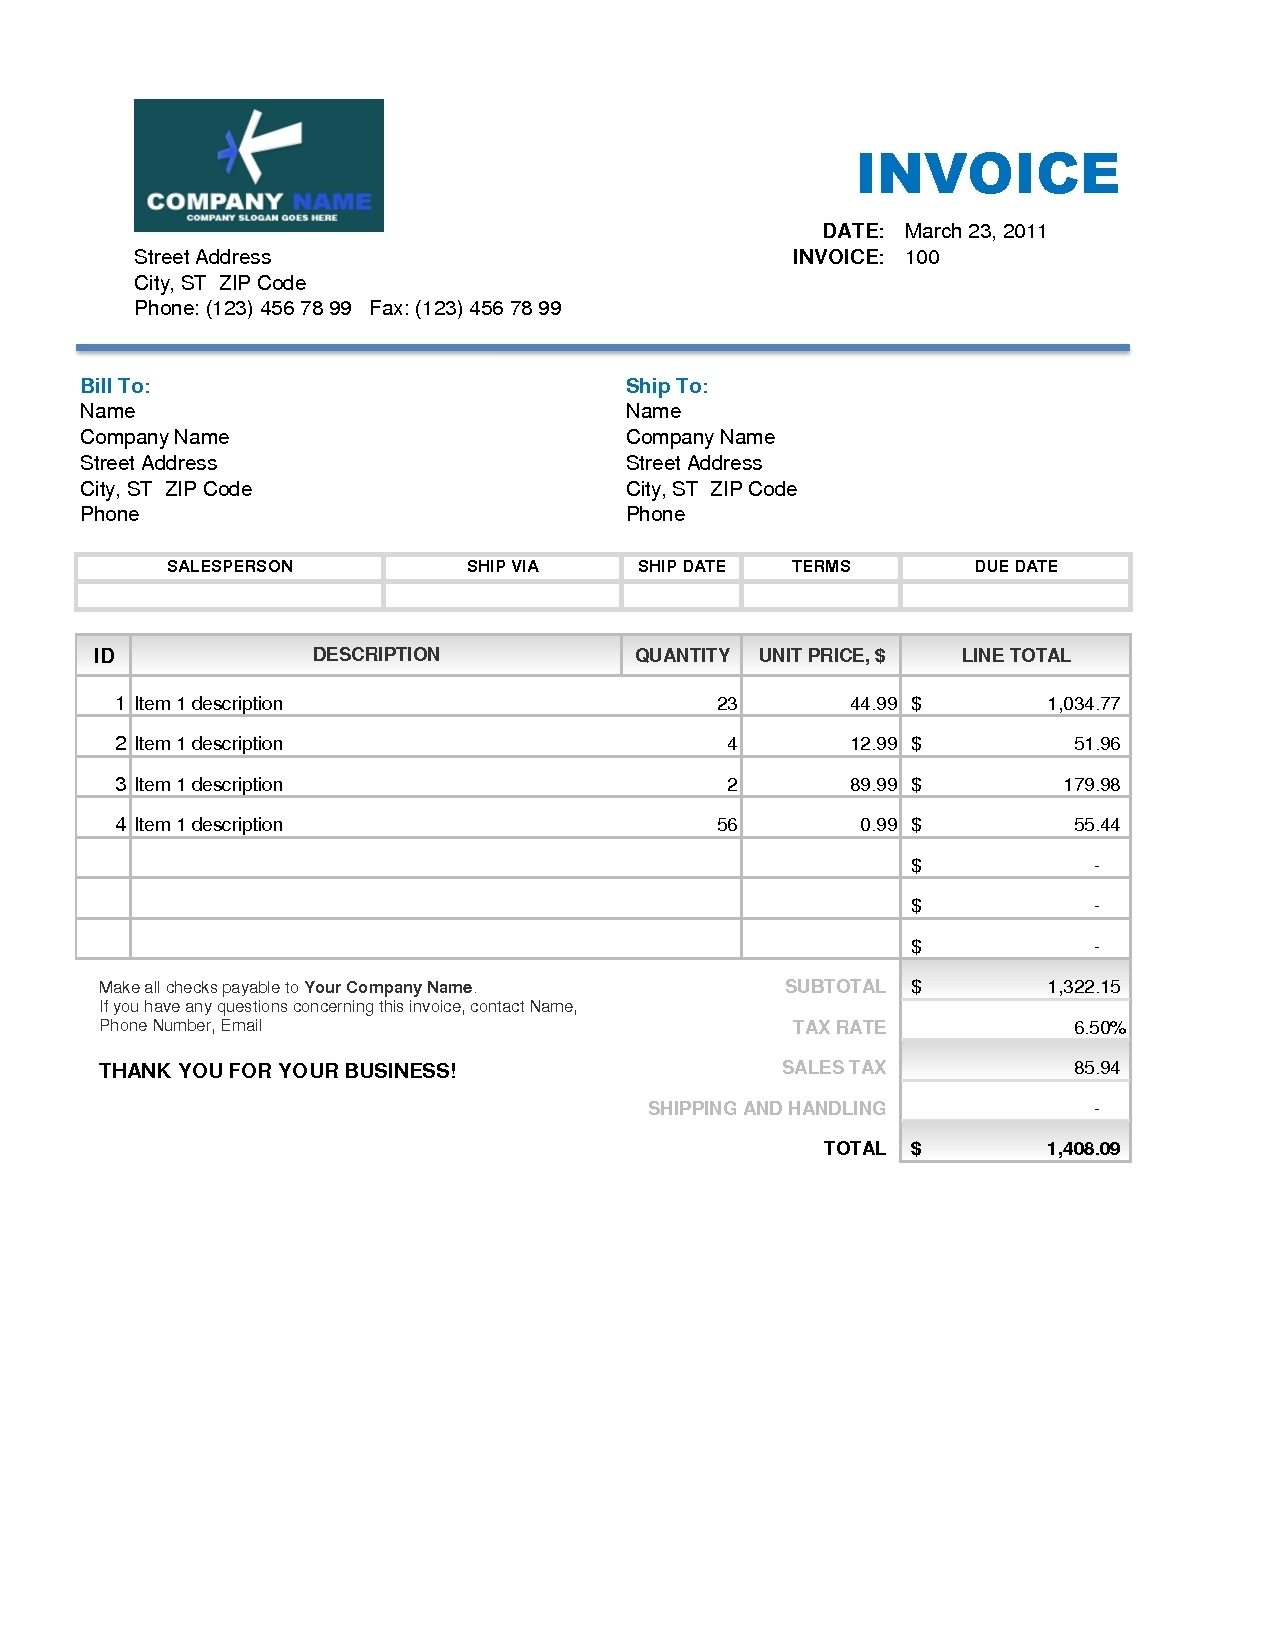 ... Sample Roofing Invoice Doc 600730 Roofing Invoice Template 4 Sample On  Excel Free Mdxar 1275 X